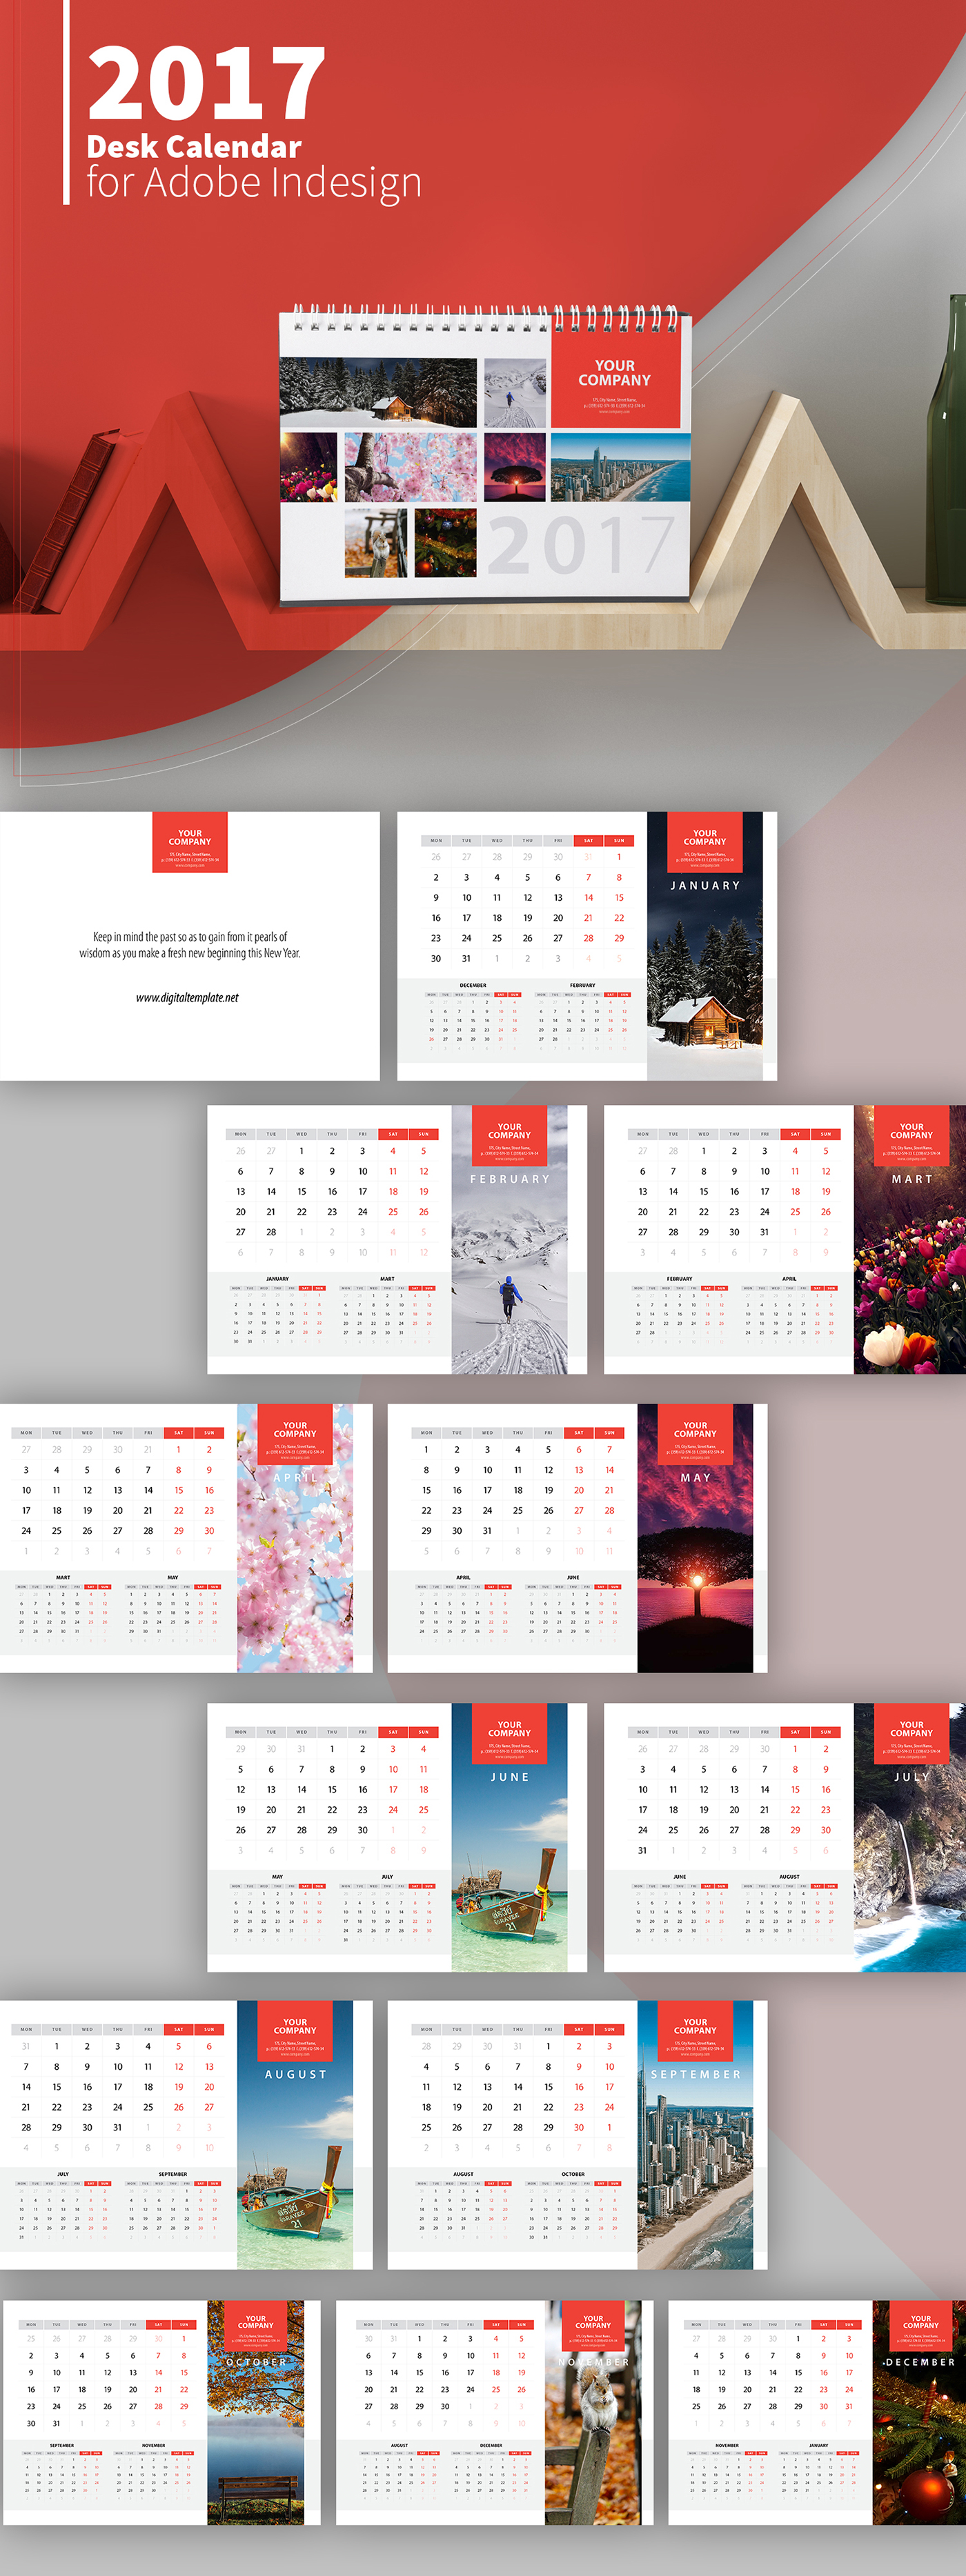 freebie 2017 desk calendar template on behance, Presentation templates